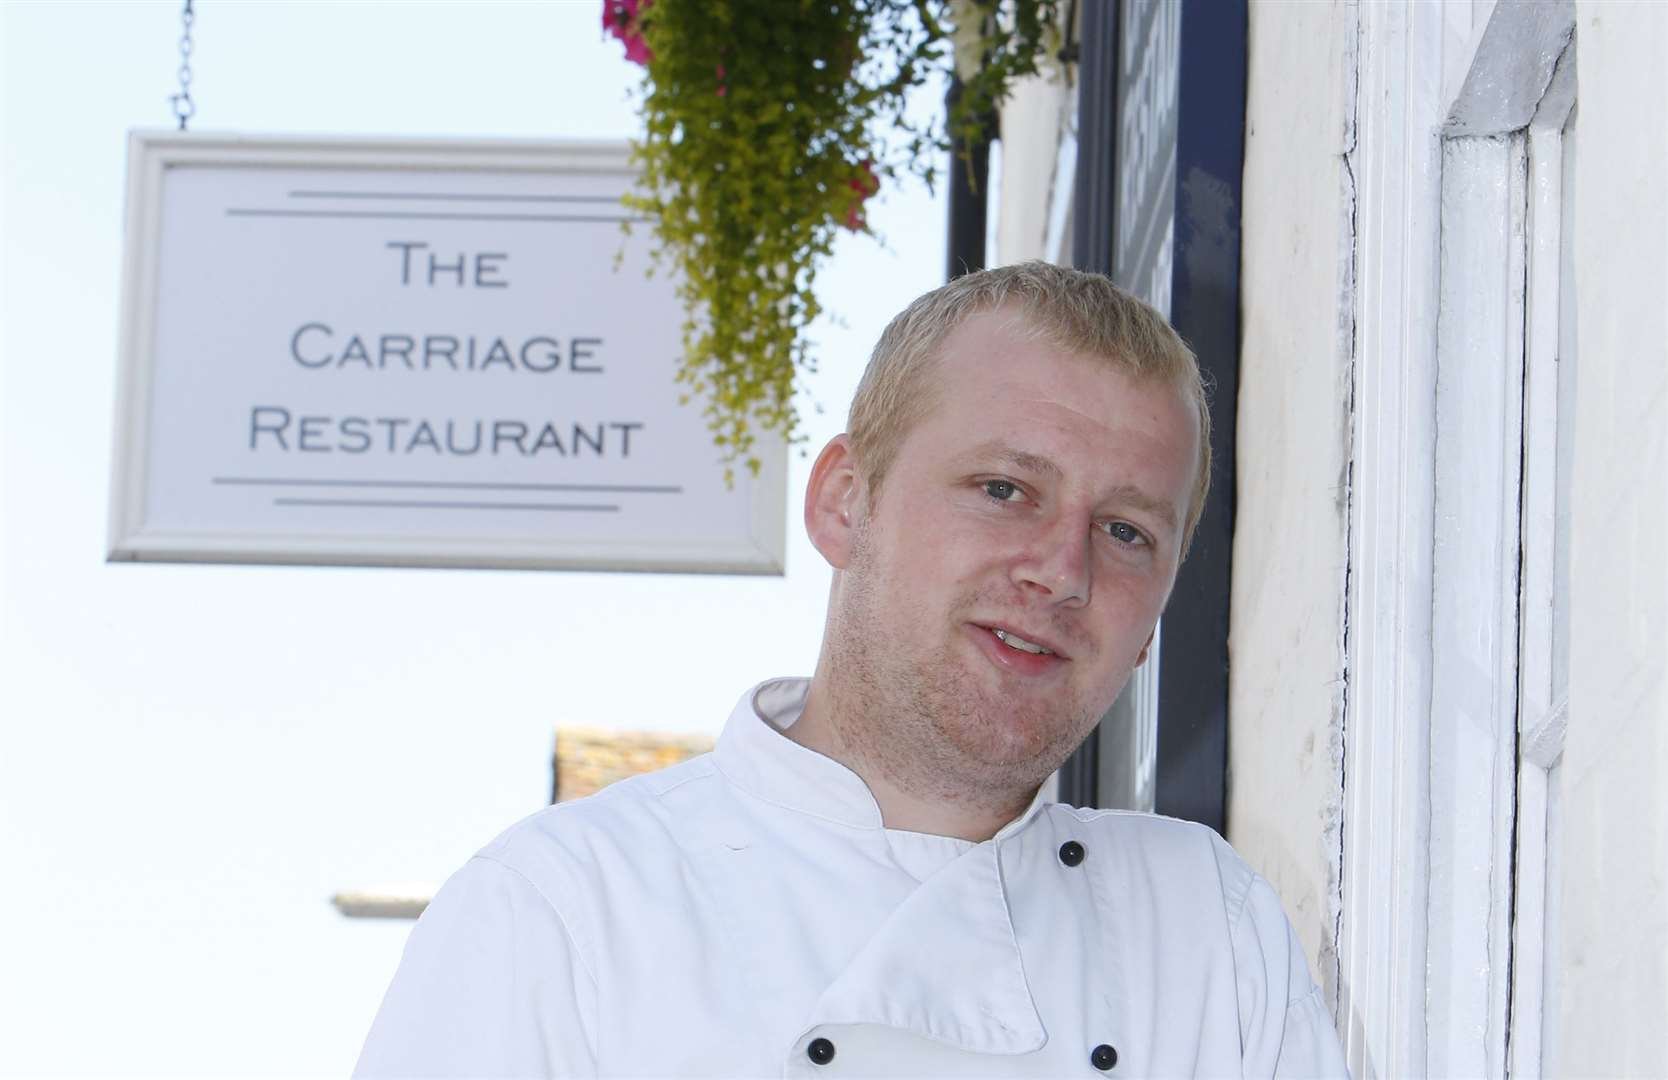 The Carriage Restaurant co-owner and chef, Nicky Martin. Picture: Andy Jones